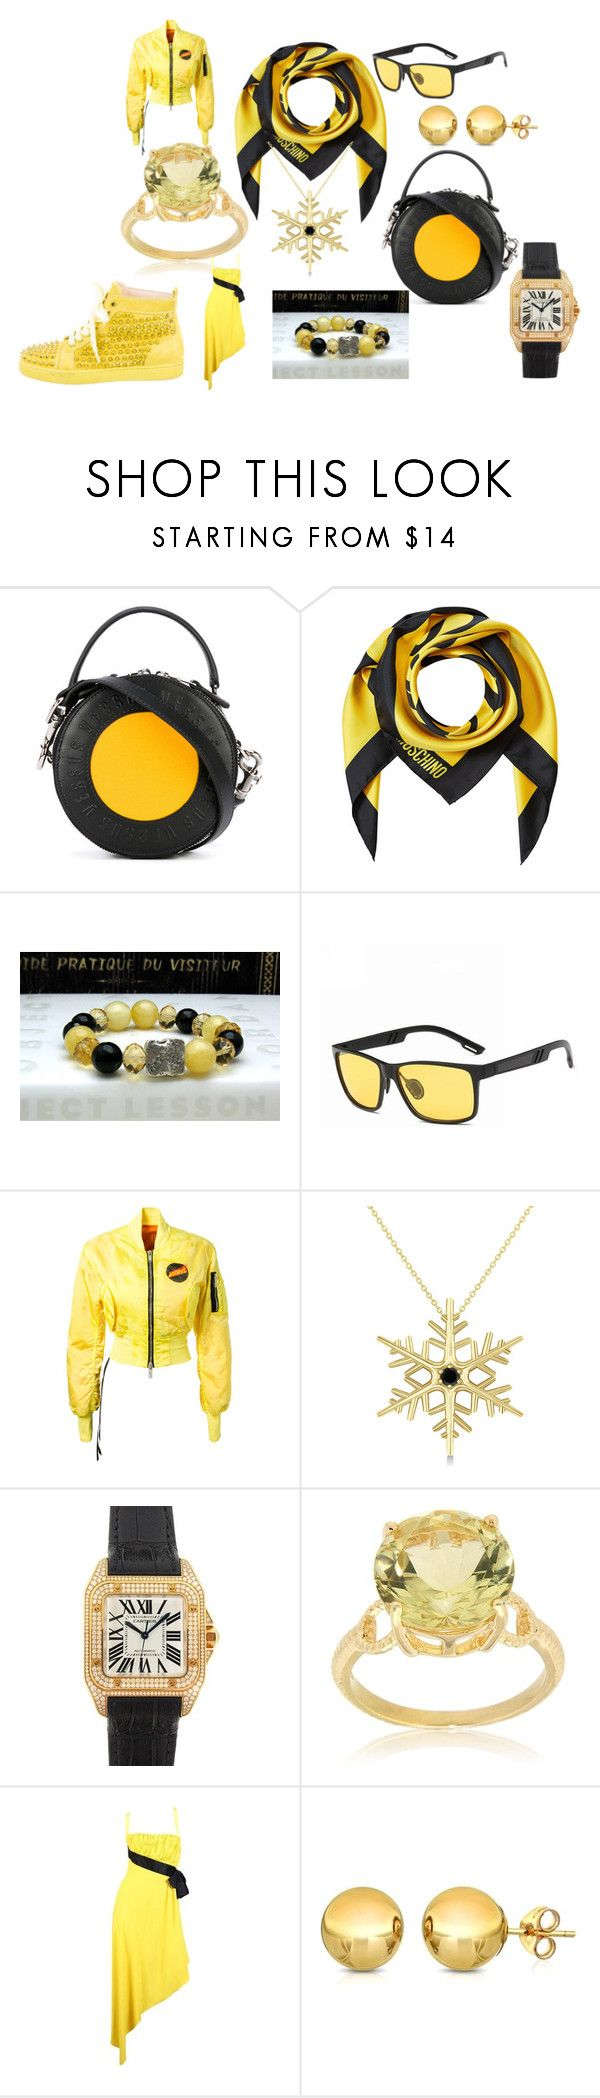 """BEE BUSINESS"" by marguerite-dillworth on Polyvore featuring Versus, Moschino, Unravel, Allurez, Cartier, Pearlz Ocean, Chanel, Pori and Christian Louboutin"